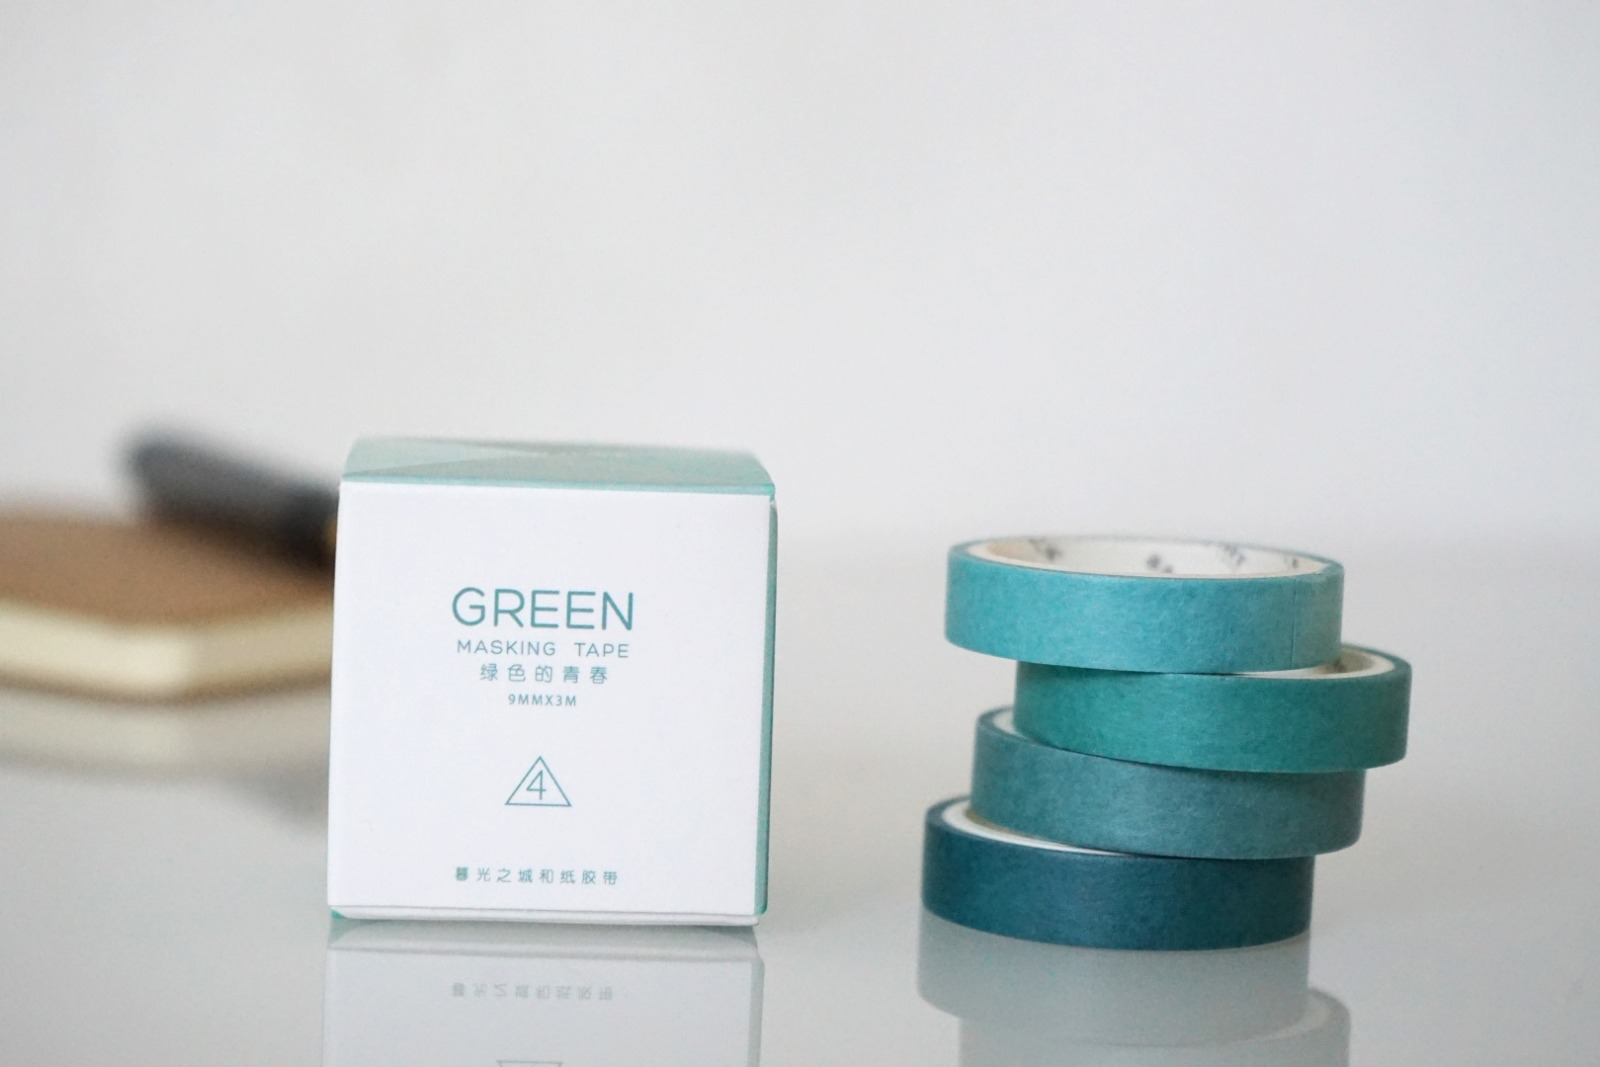 Klebeband Washi Tape Green